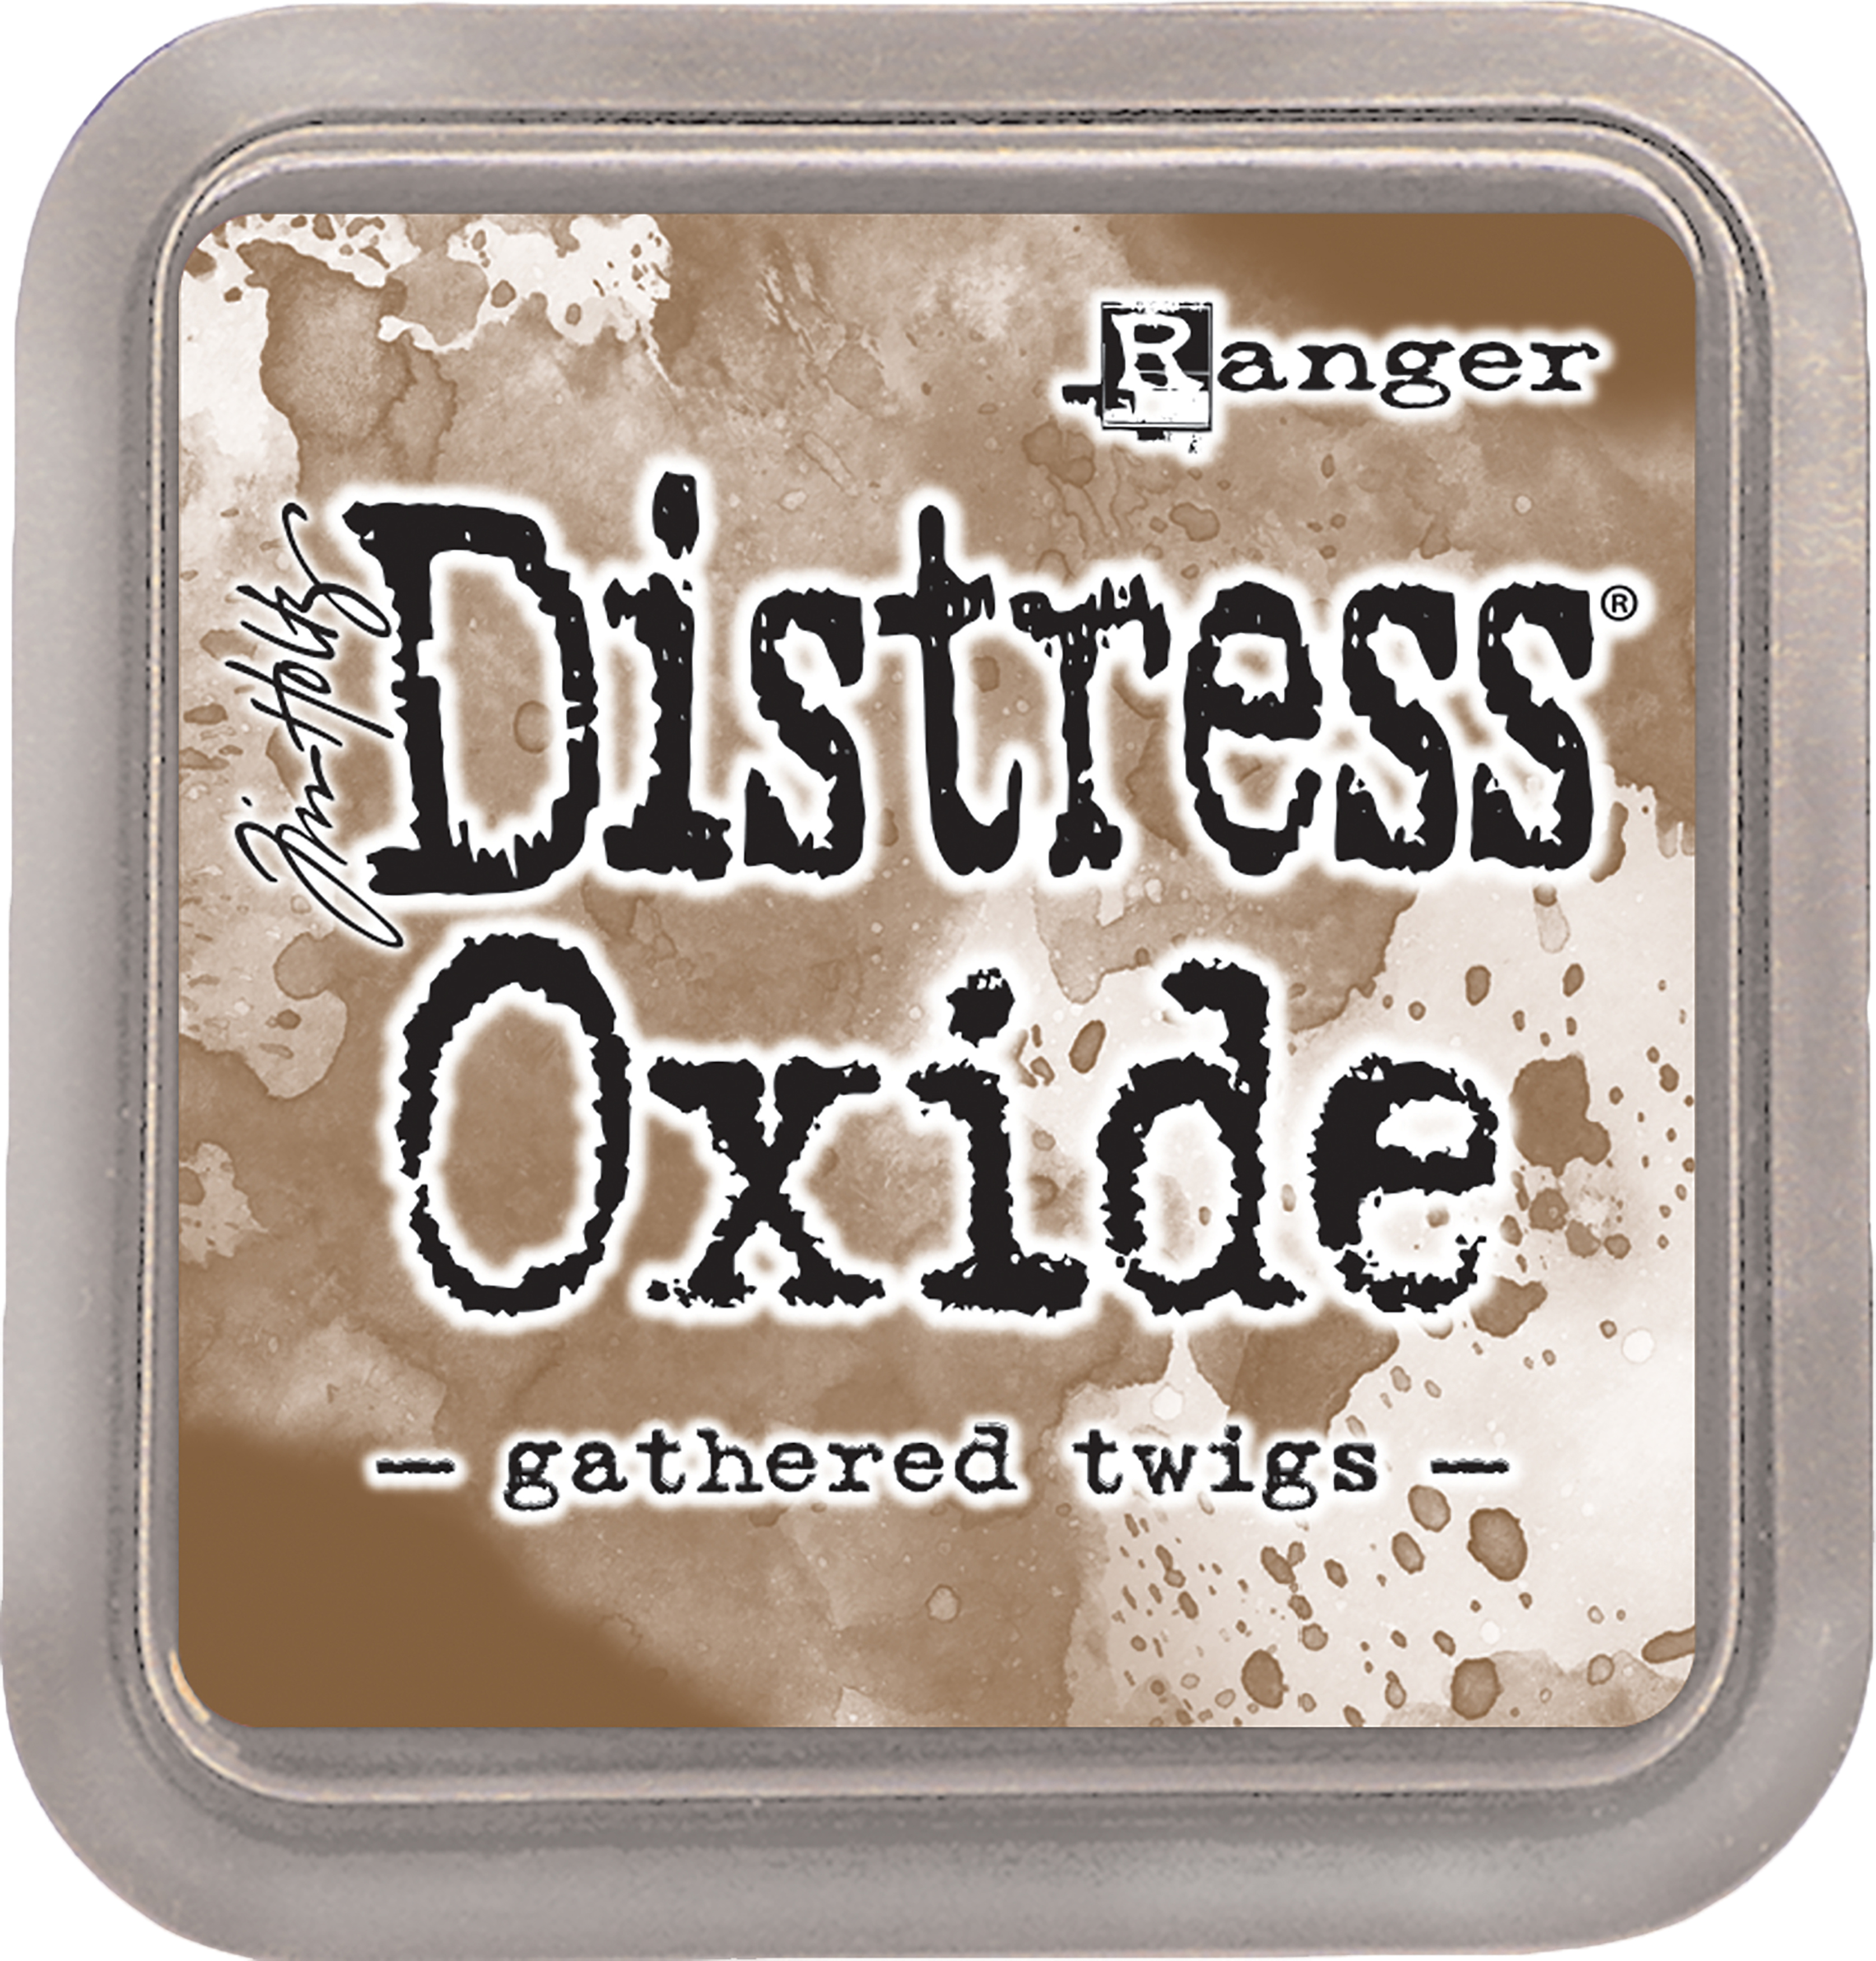 Tim Holtz Distress Oxides Ink Pad-Gathered Twigs